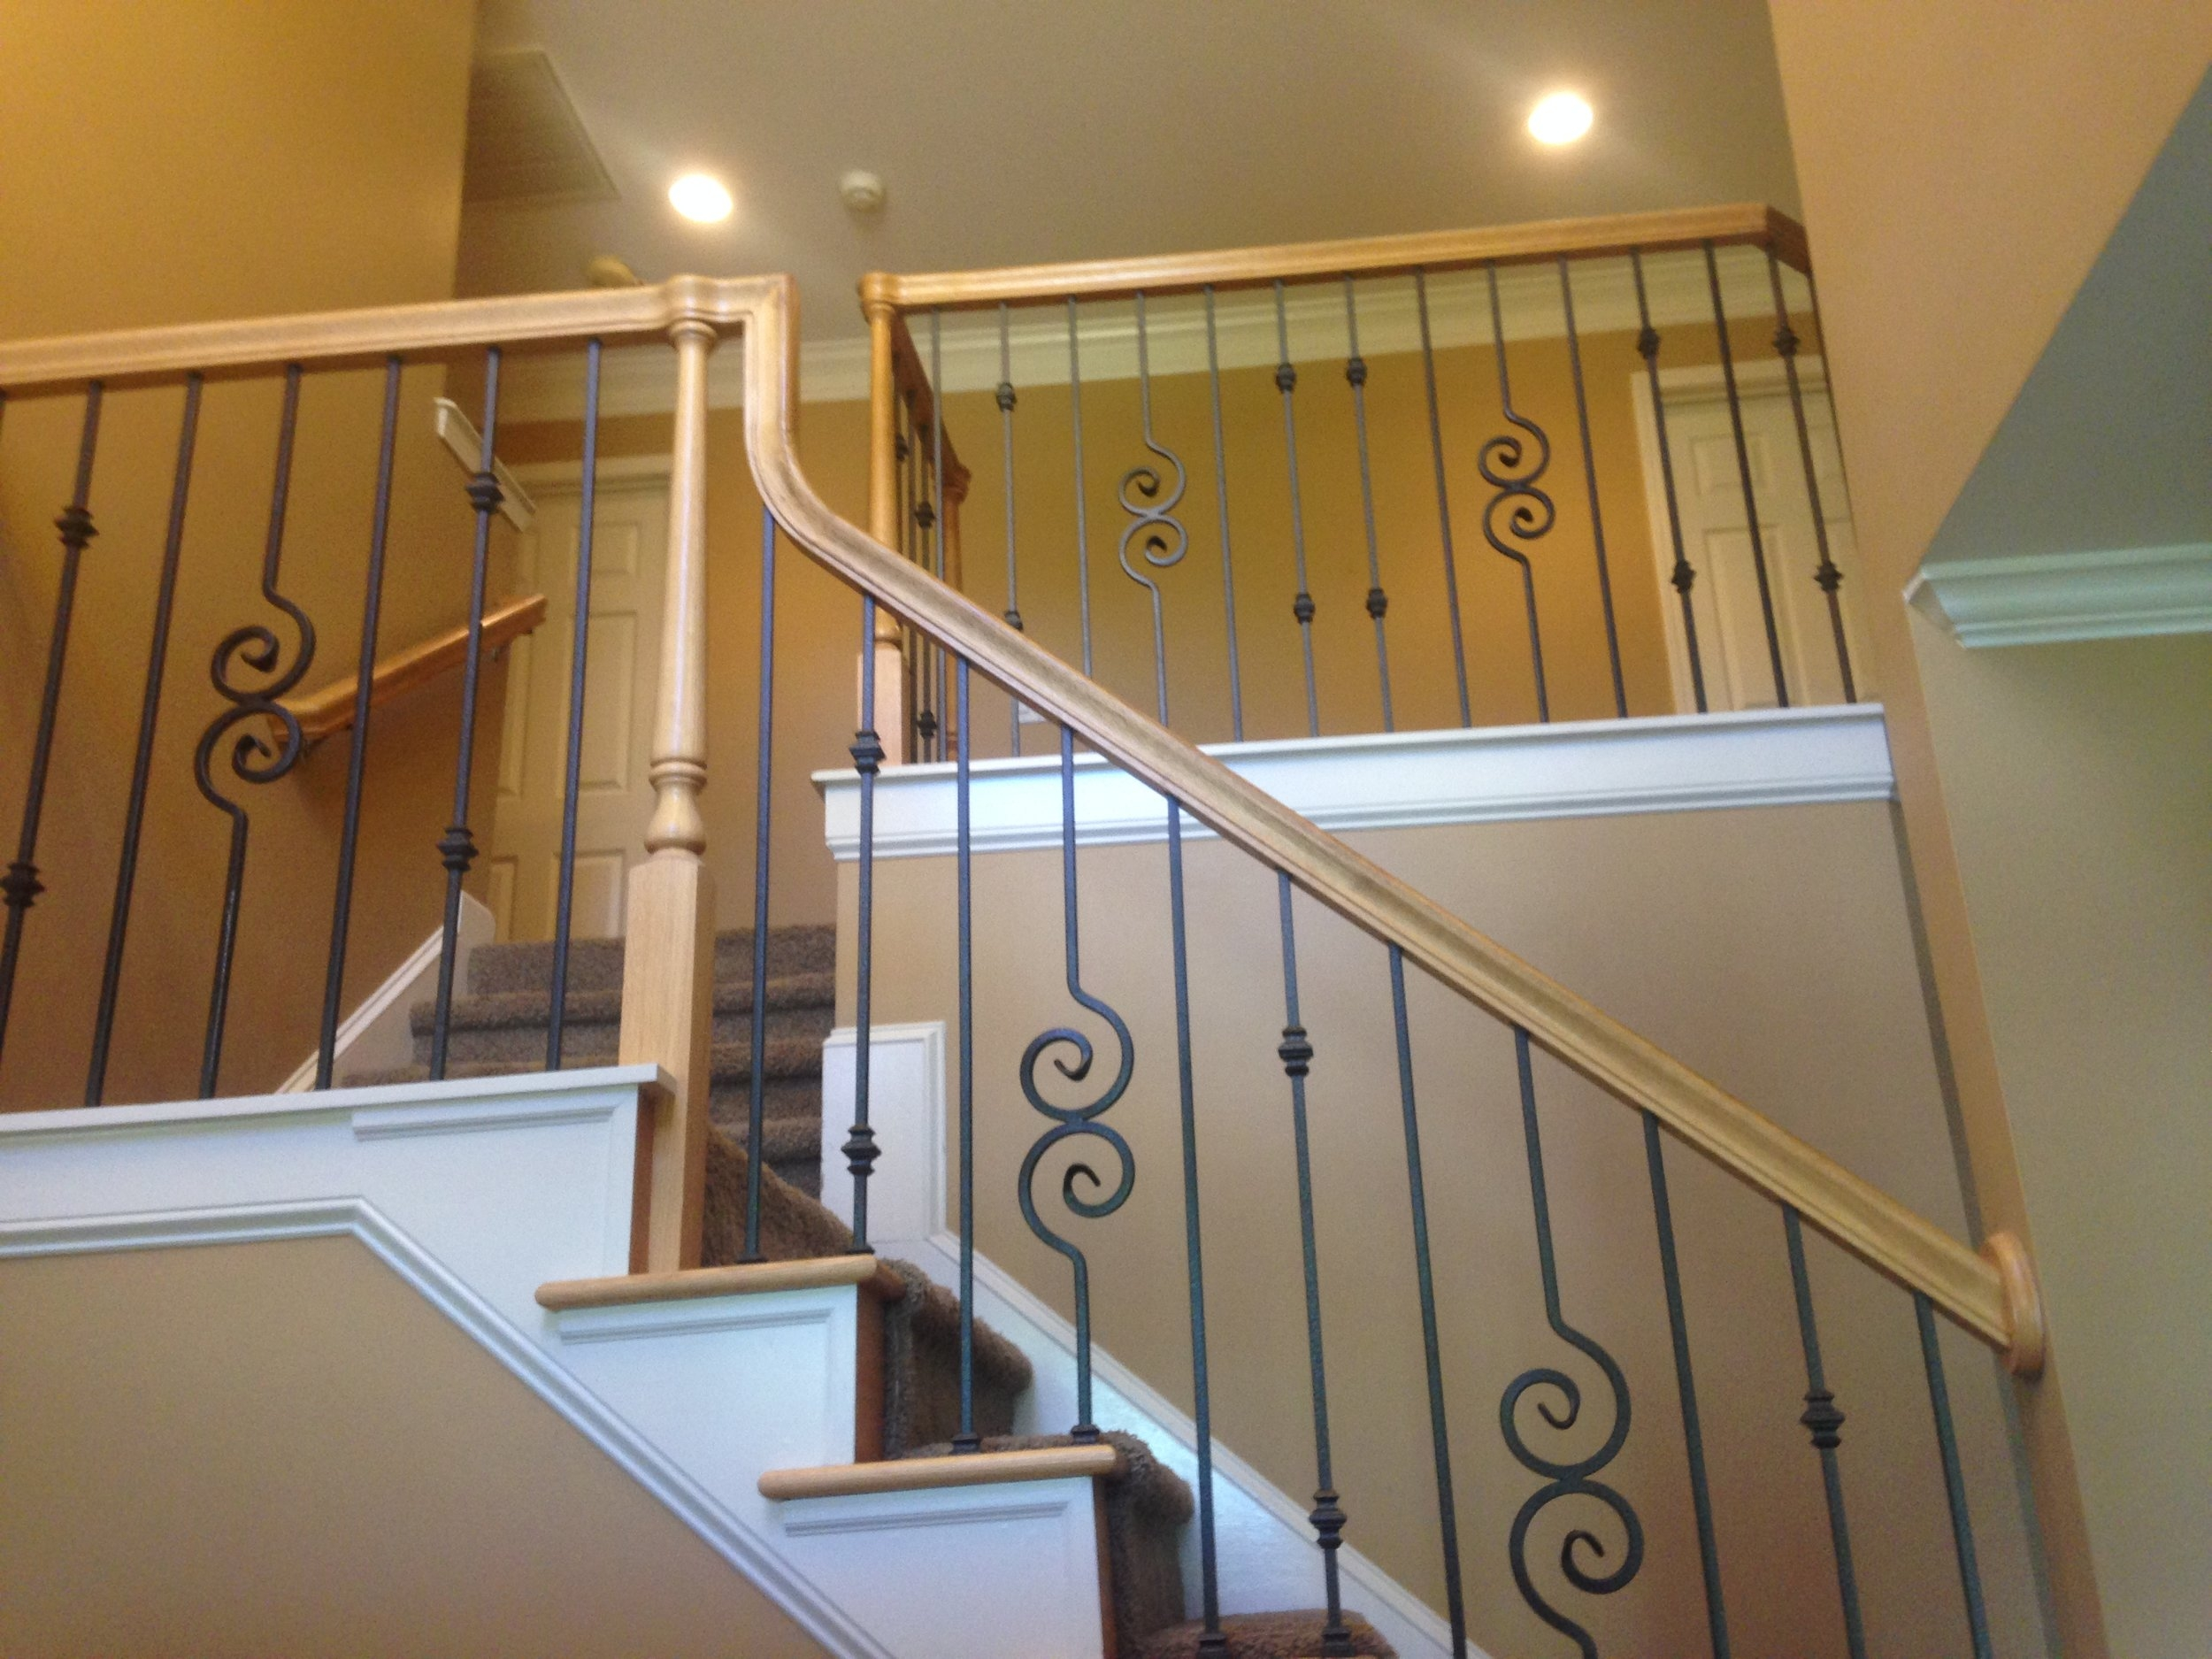 Master Fabrication — Wood Stair Handrails Fittings | Iron Railing With Wood Handrail | Stair Systems | Stair Parts | Metal | Stair | Staircase